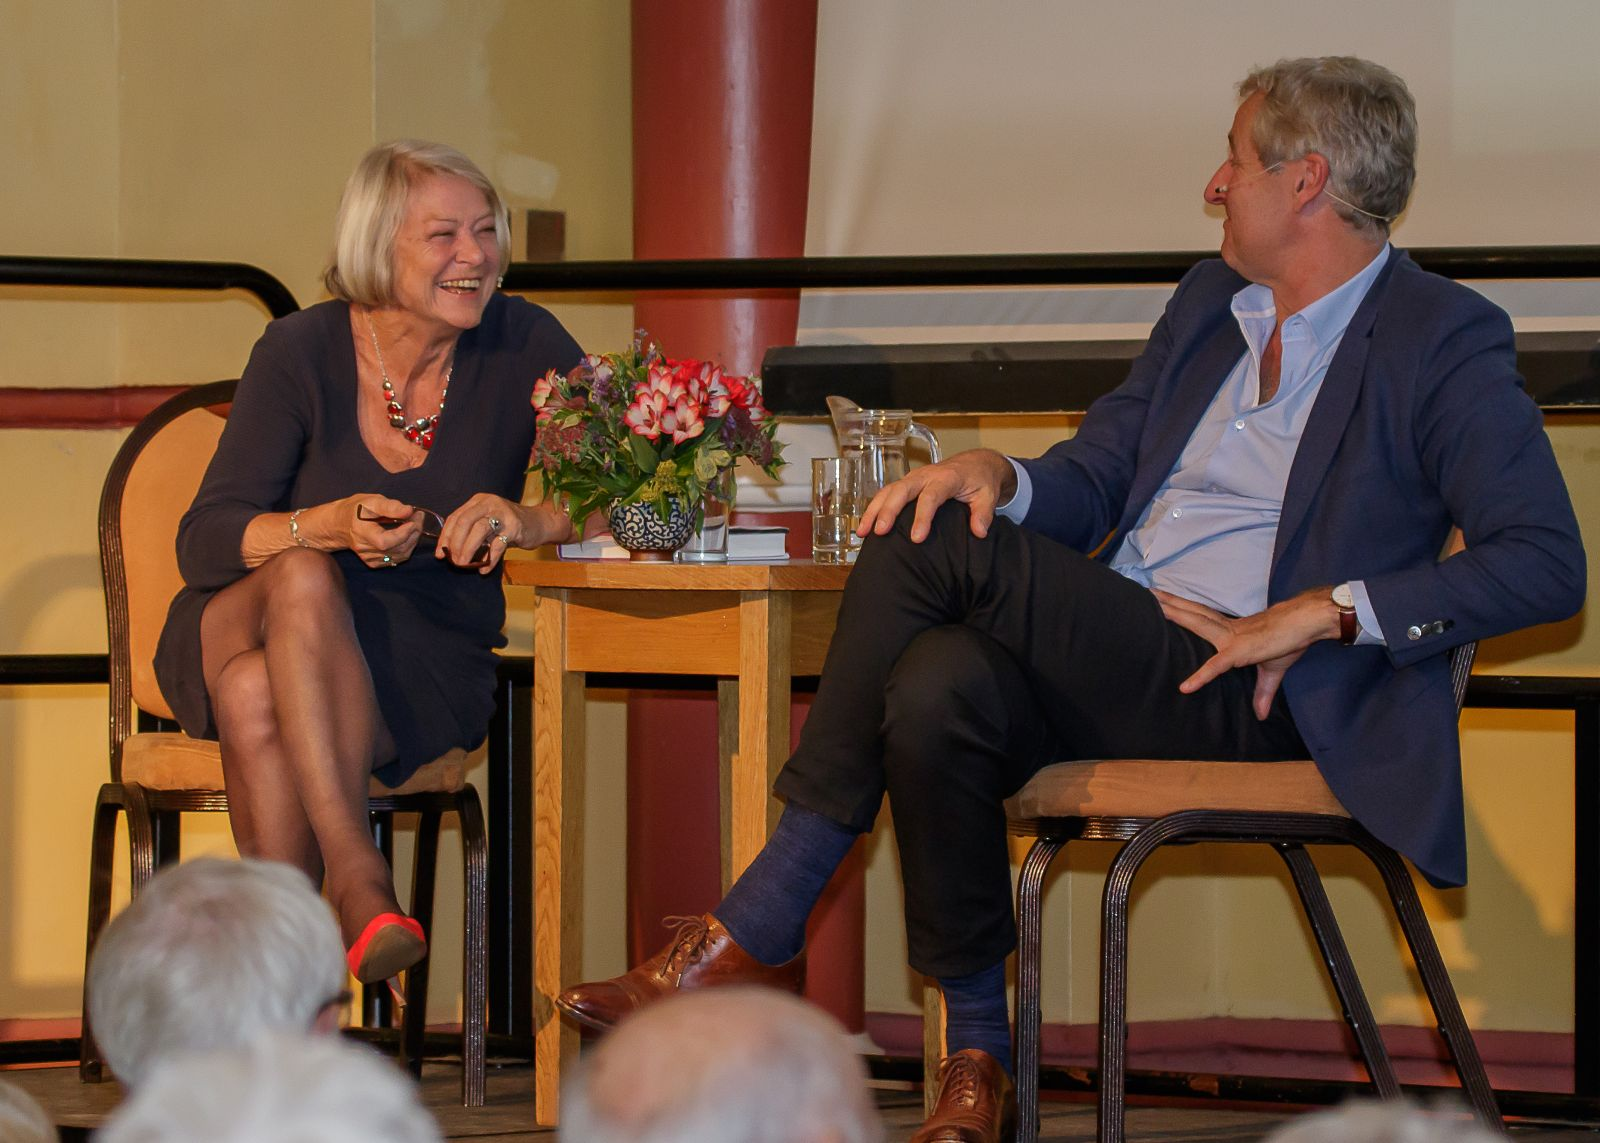 Kate Adie and Mark Austin